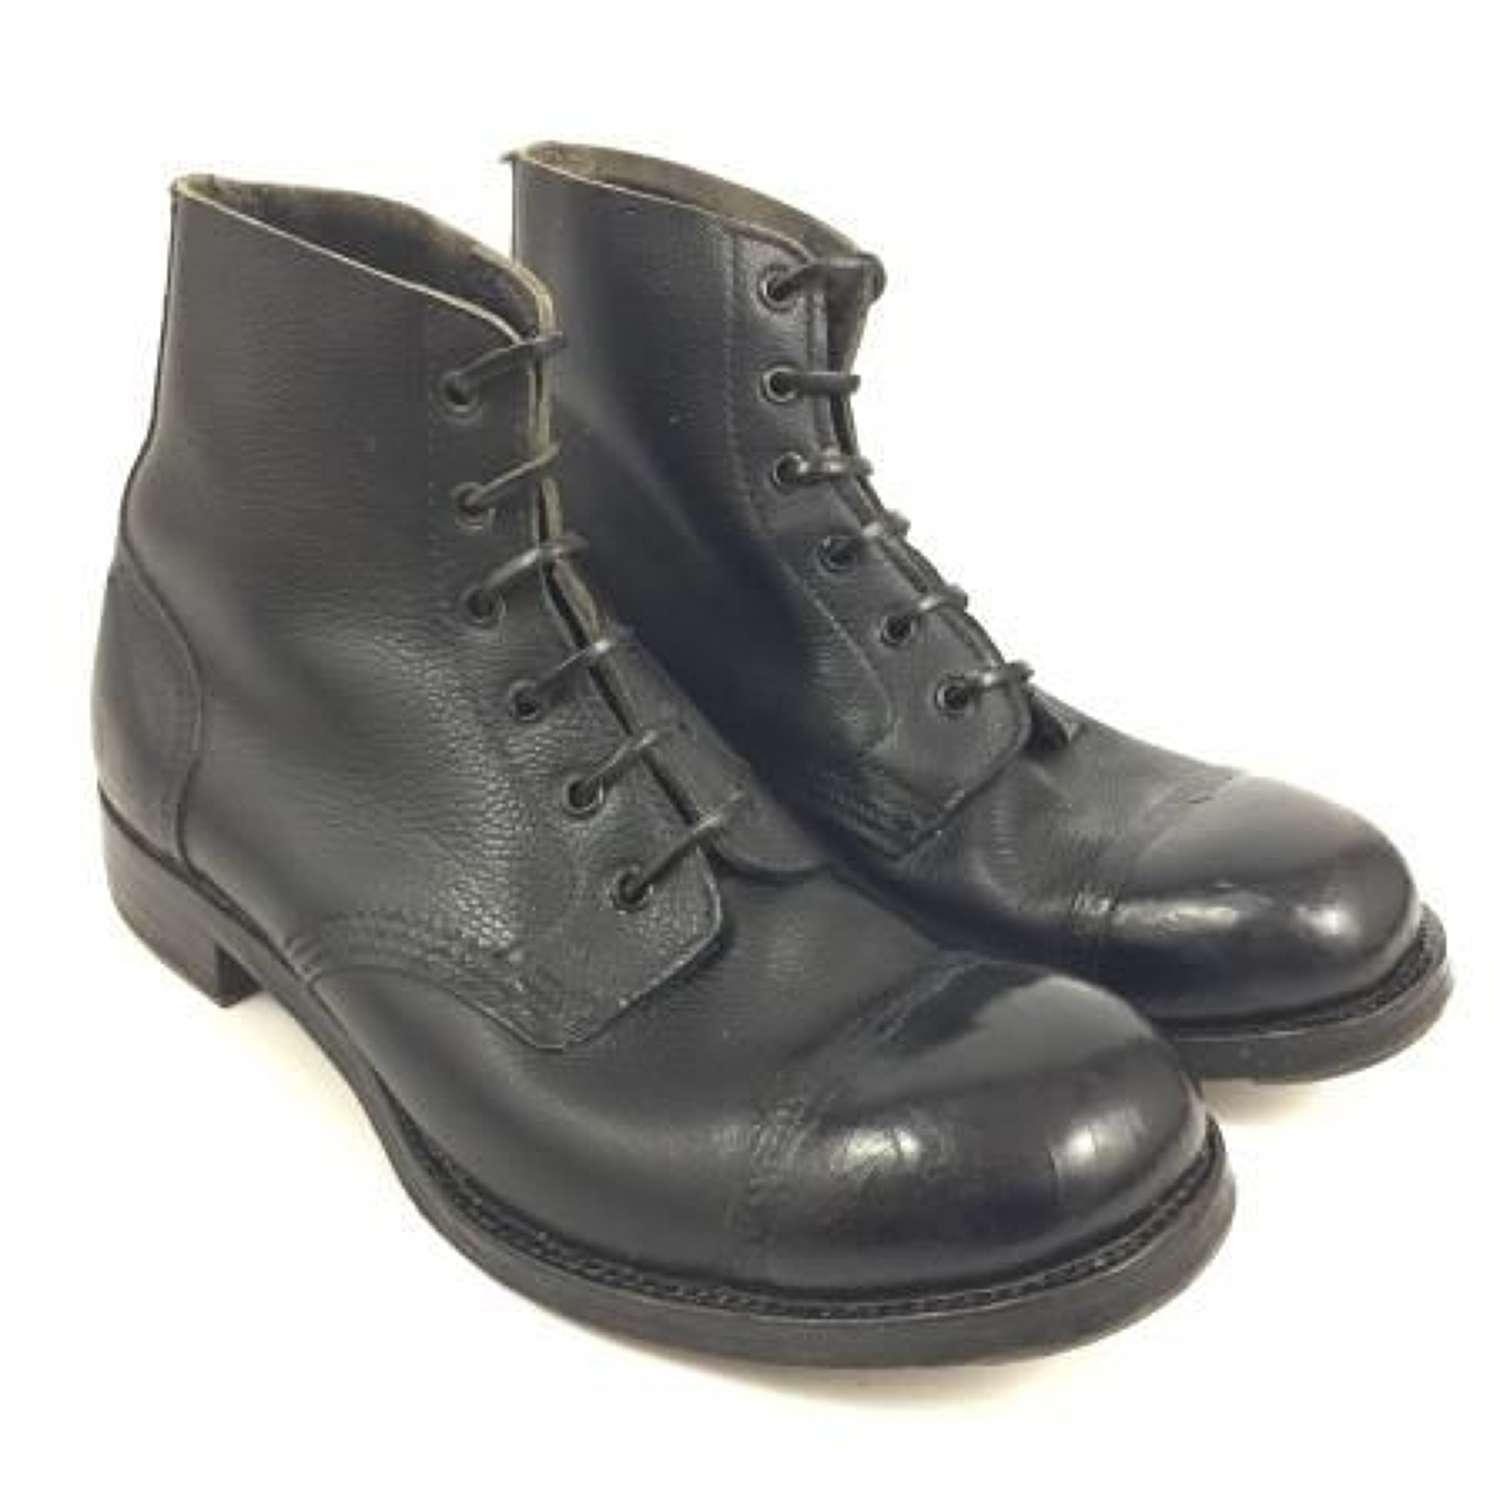 1955 Dated British Army Ammunition Boots - Size 10S